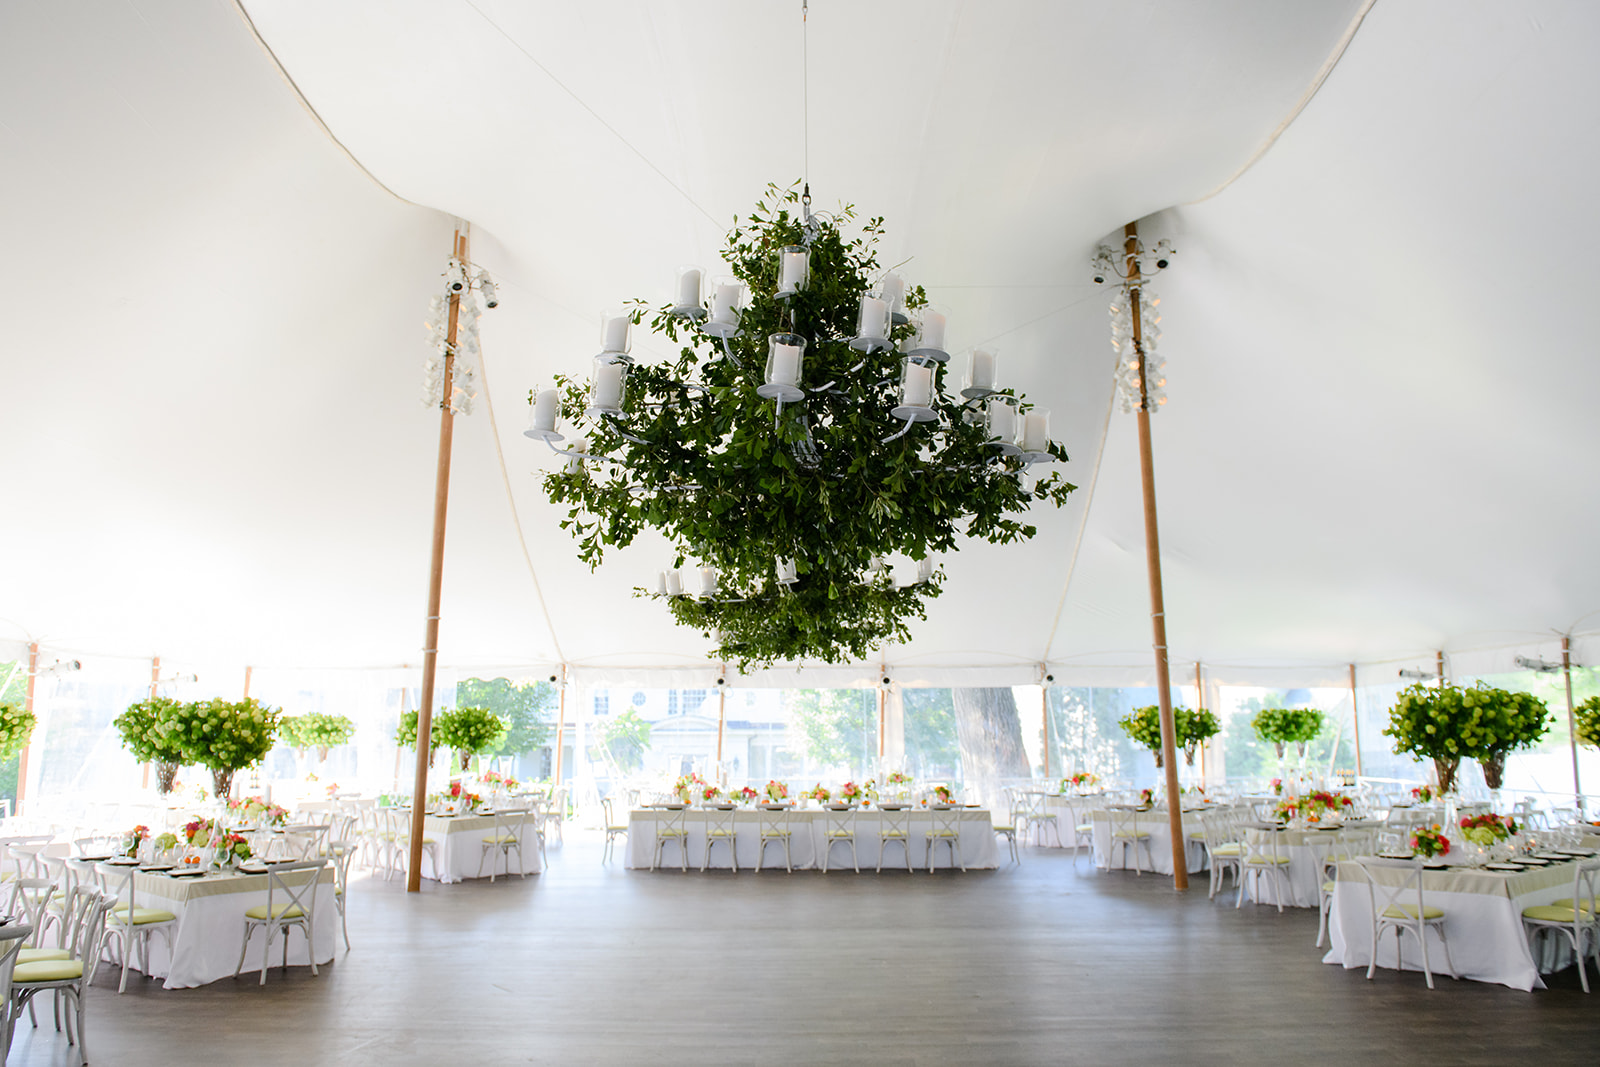 Marina Birch, of Birch Design Studios, and Rishi Patel, of HMR Designs are our design and planning dream team! We're swooning over this bright and colorful summer dinnerscape. Hydrangeas, tangerines, lilies, peonies, and other bright florals filled the sweeping tent with color.